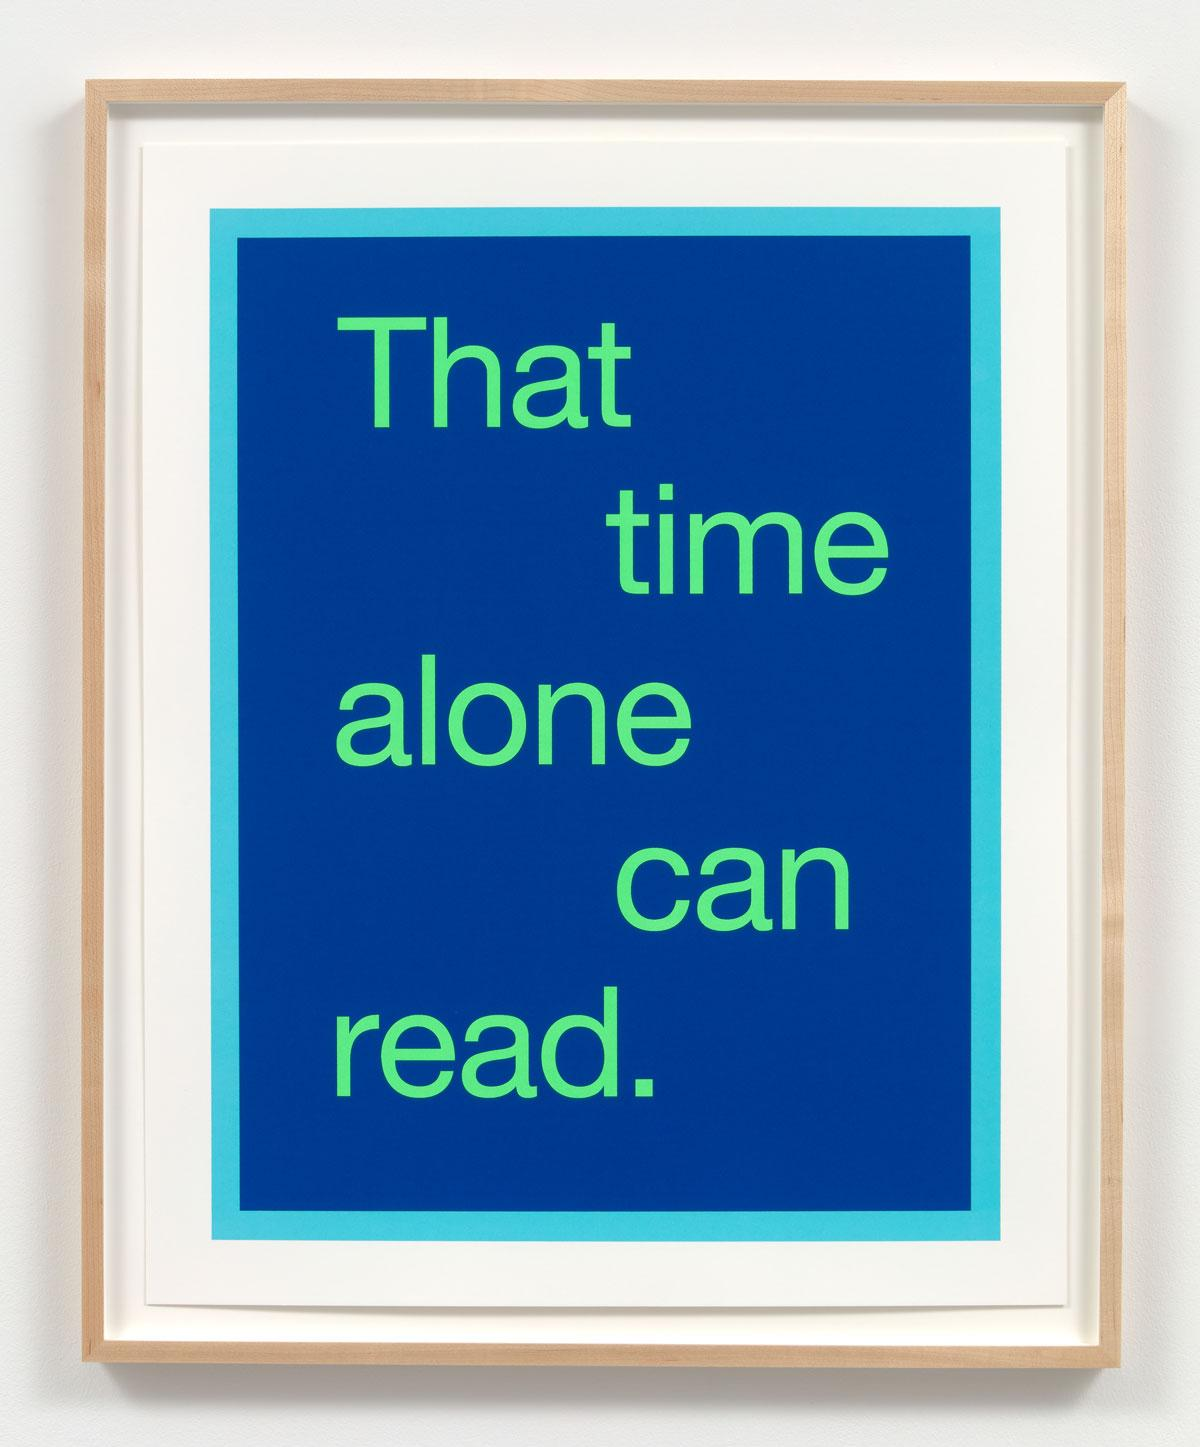 Renée Green That time alone can read., 2020 From Space Poem #2 (Laura's Words), silkscreen on paper, 67.6 x 53.3 cm. Courtesy: the artist and Bortolami; photograph Kristian Laudrup